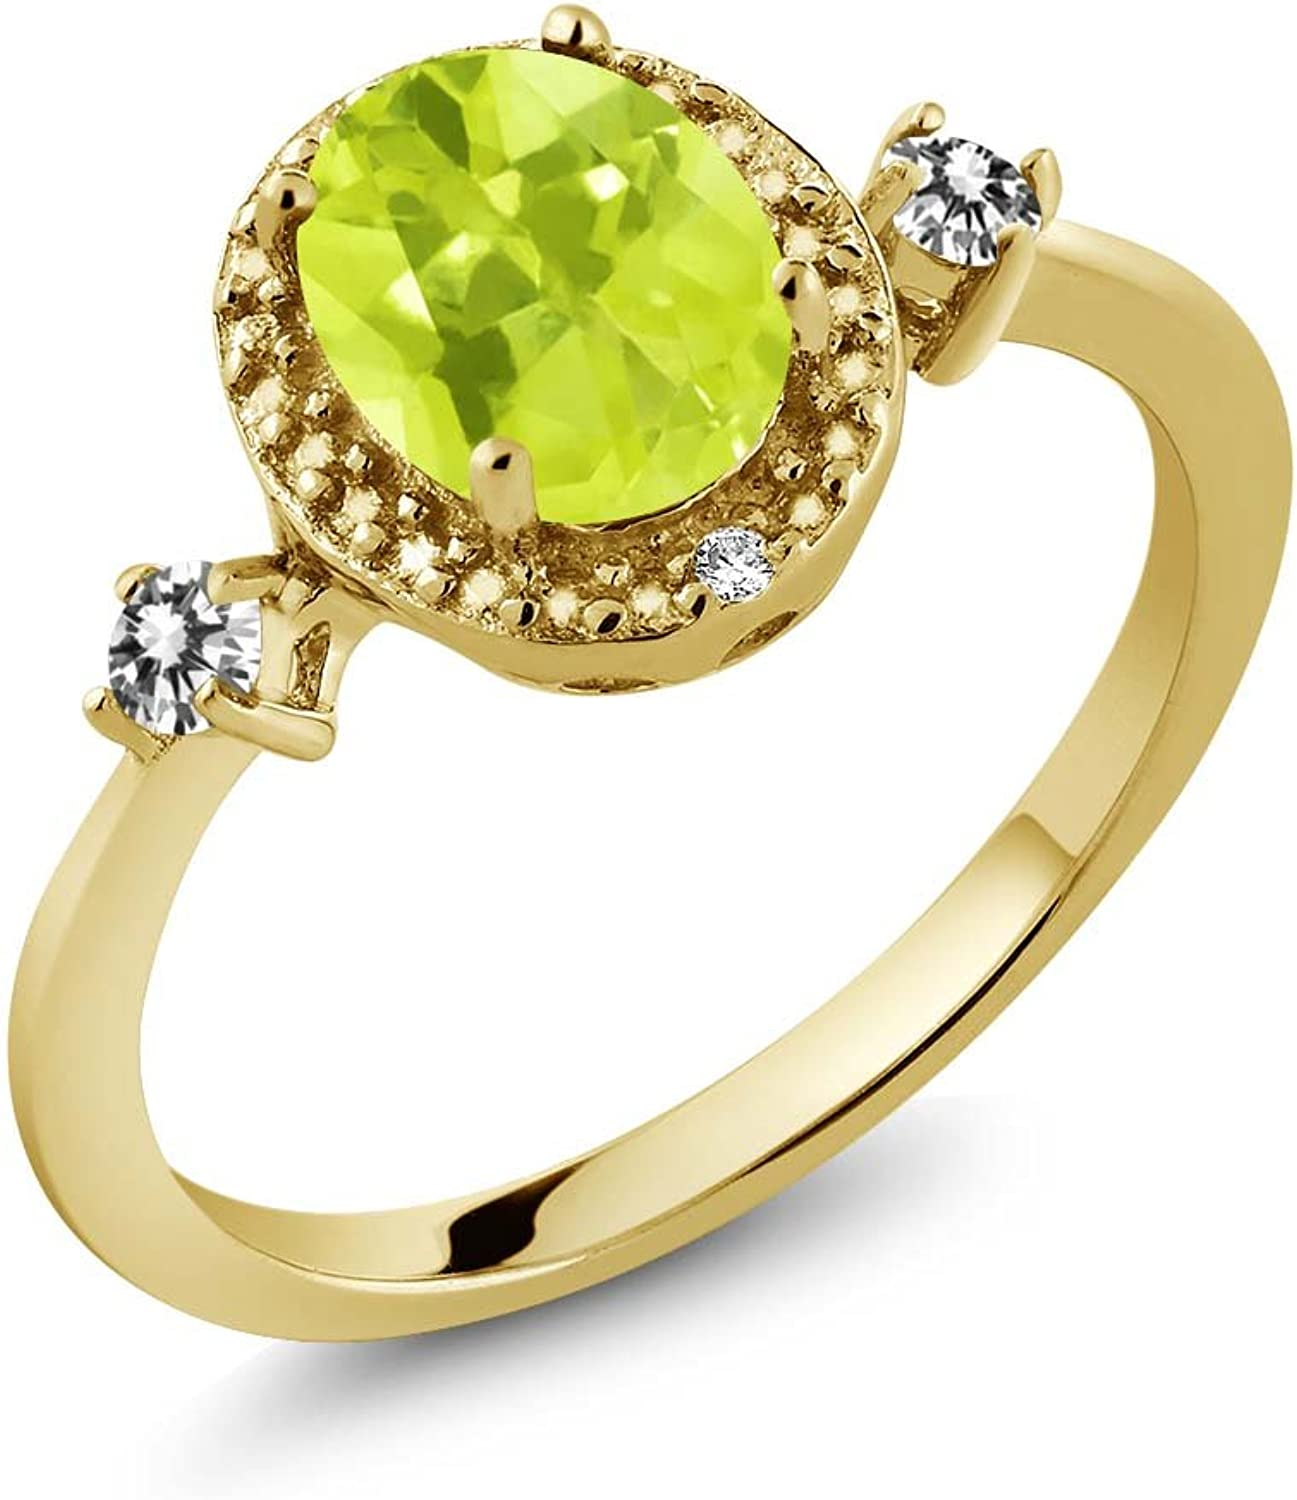 1.24 Ct Yellow Lemon Quartz White Diamond 18K Yellow gold Plated Silver Ring With Accent Diamond